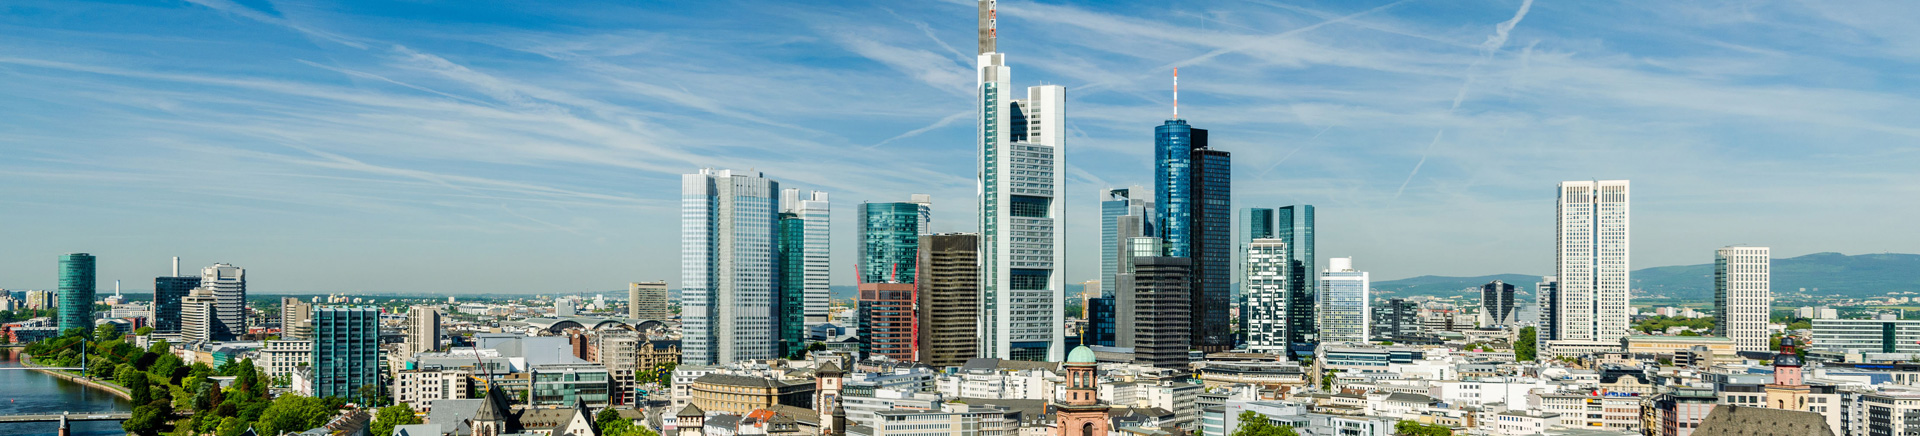 homepage_hetairos_capital_frankfurt_50651577_xl_neu